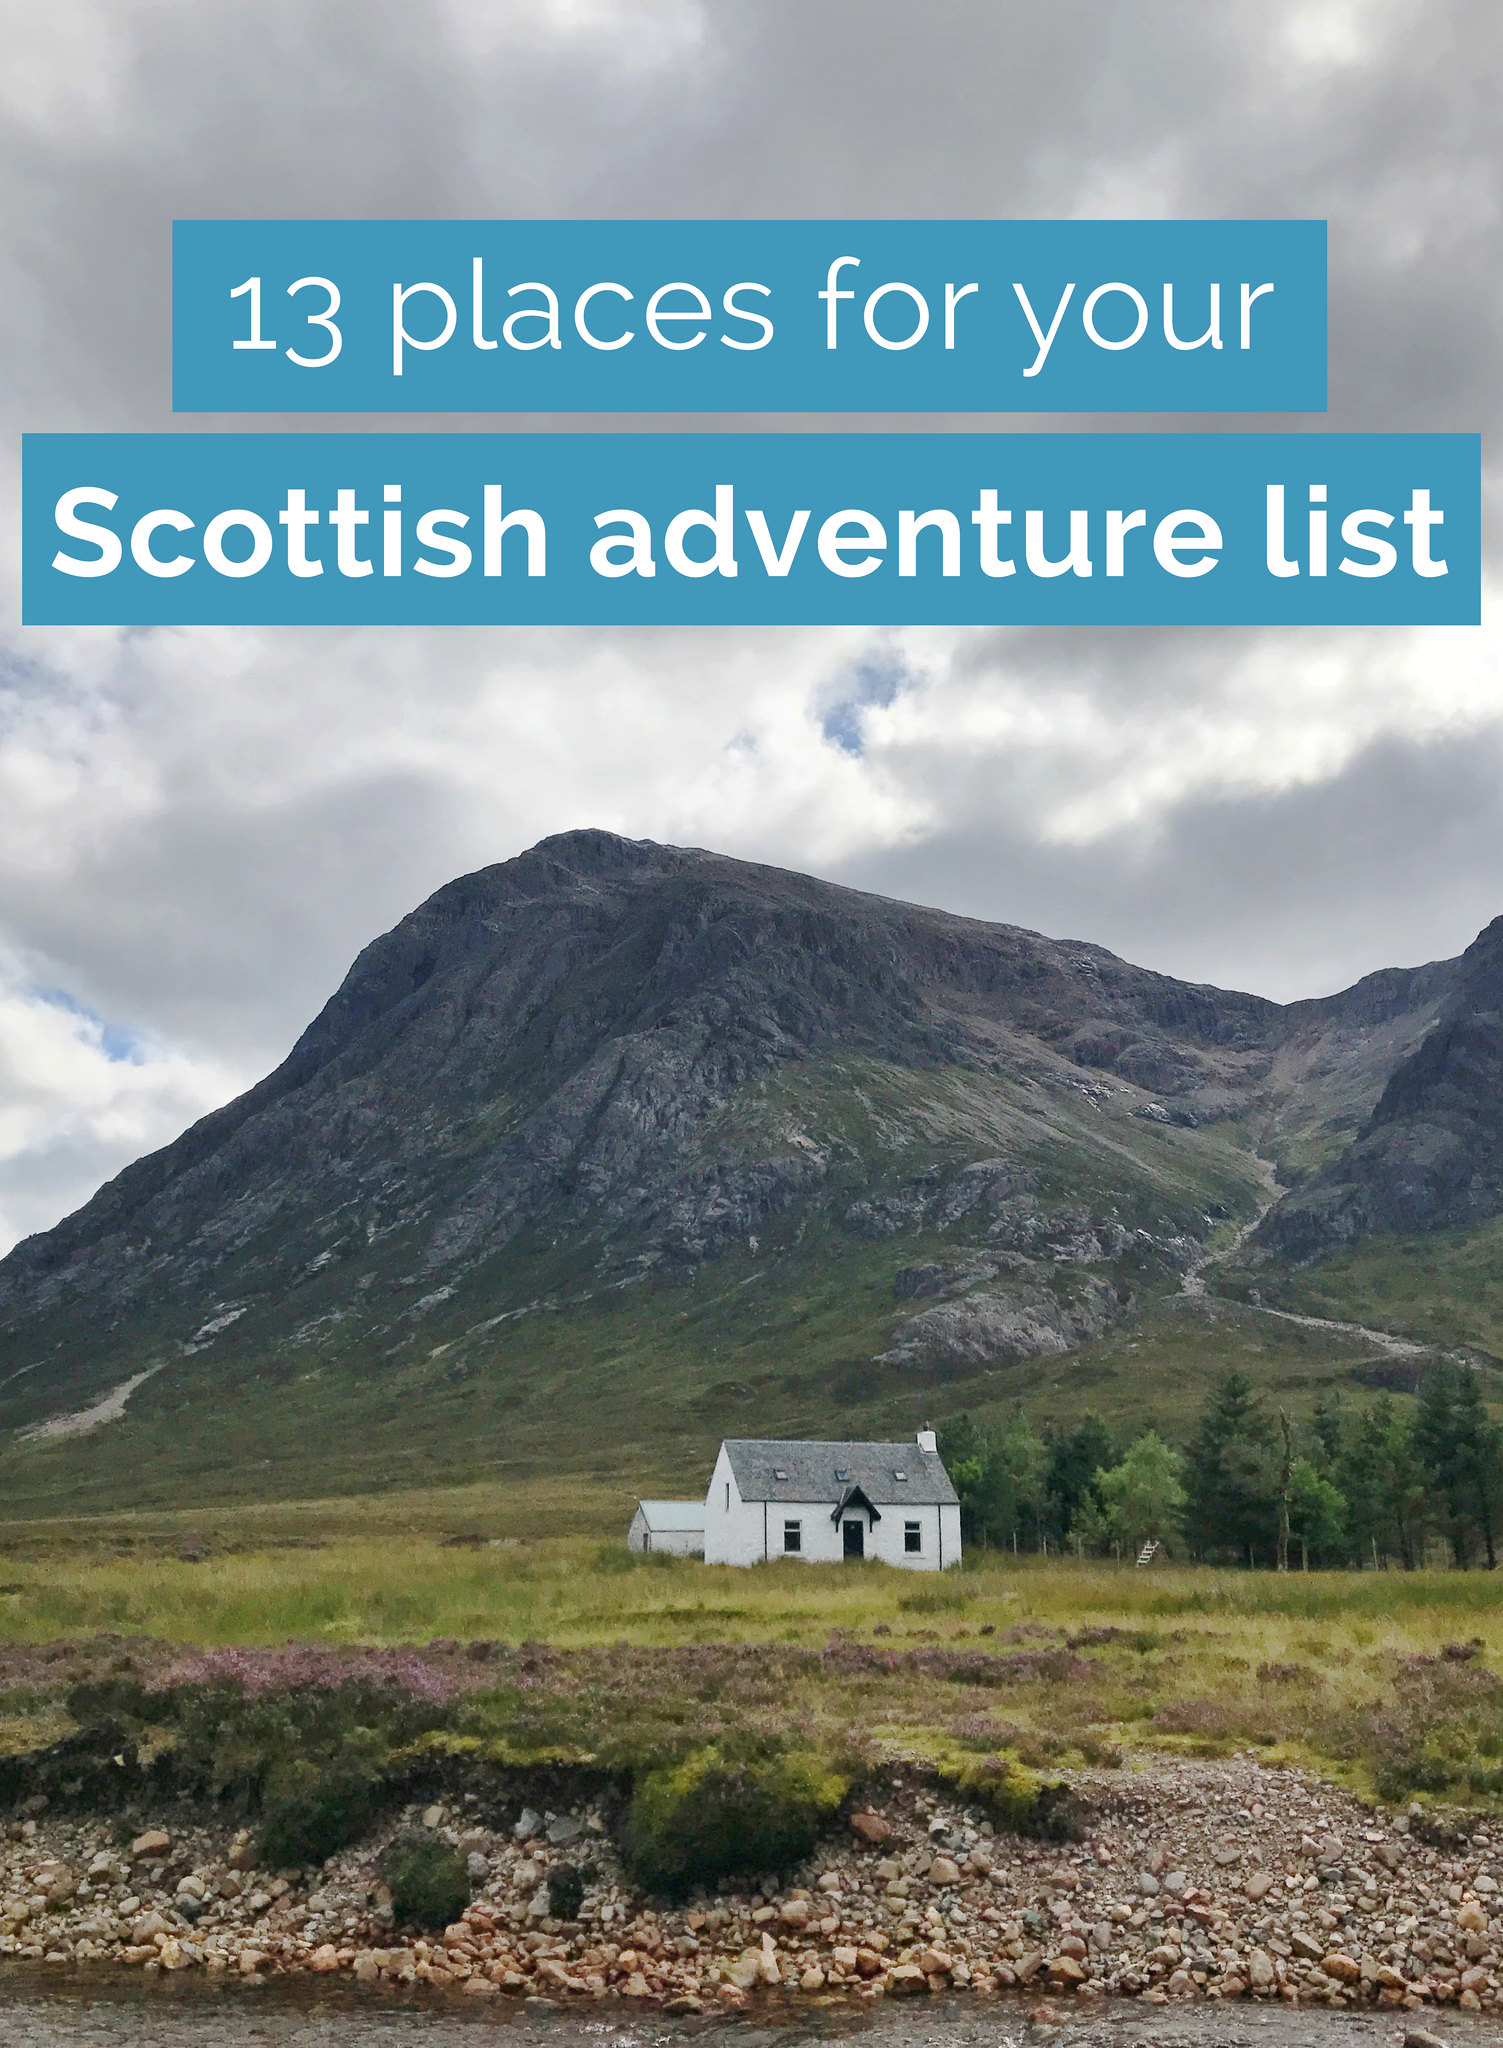 13 places to add to your Scottish adventure list